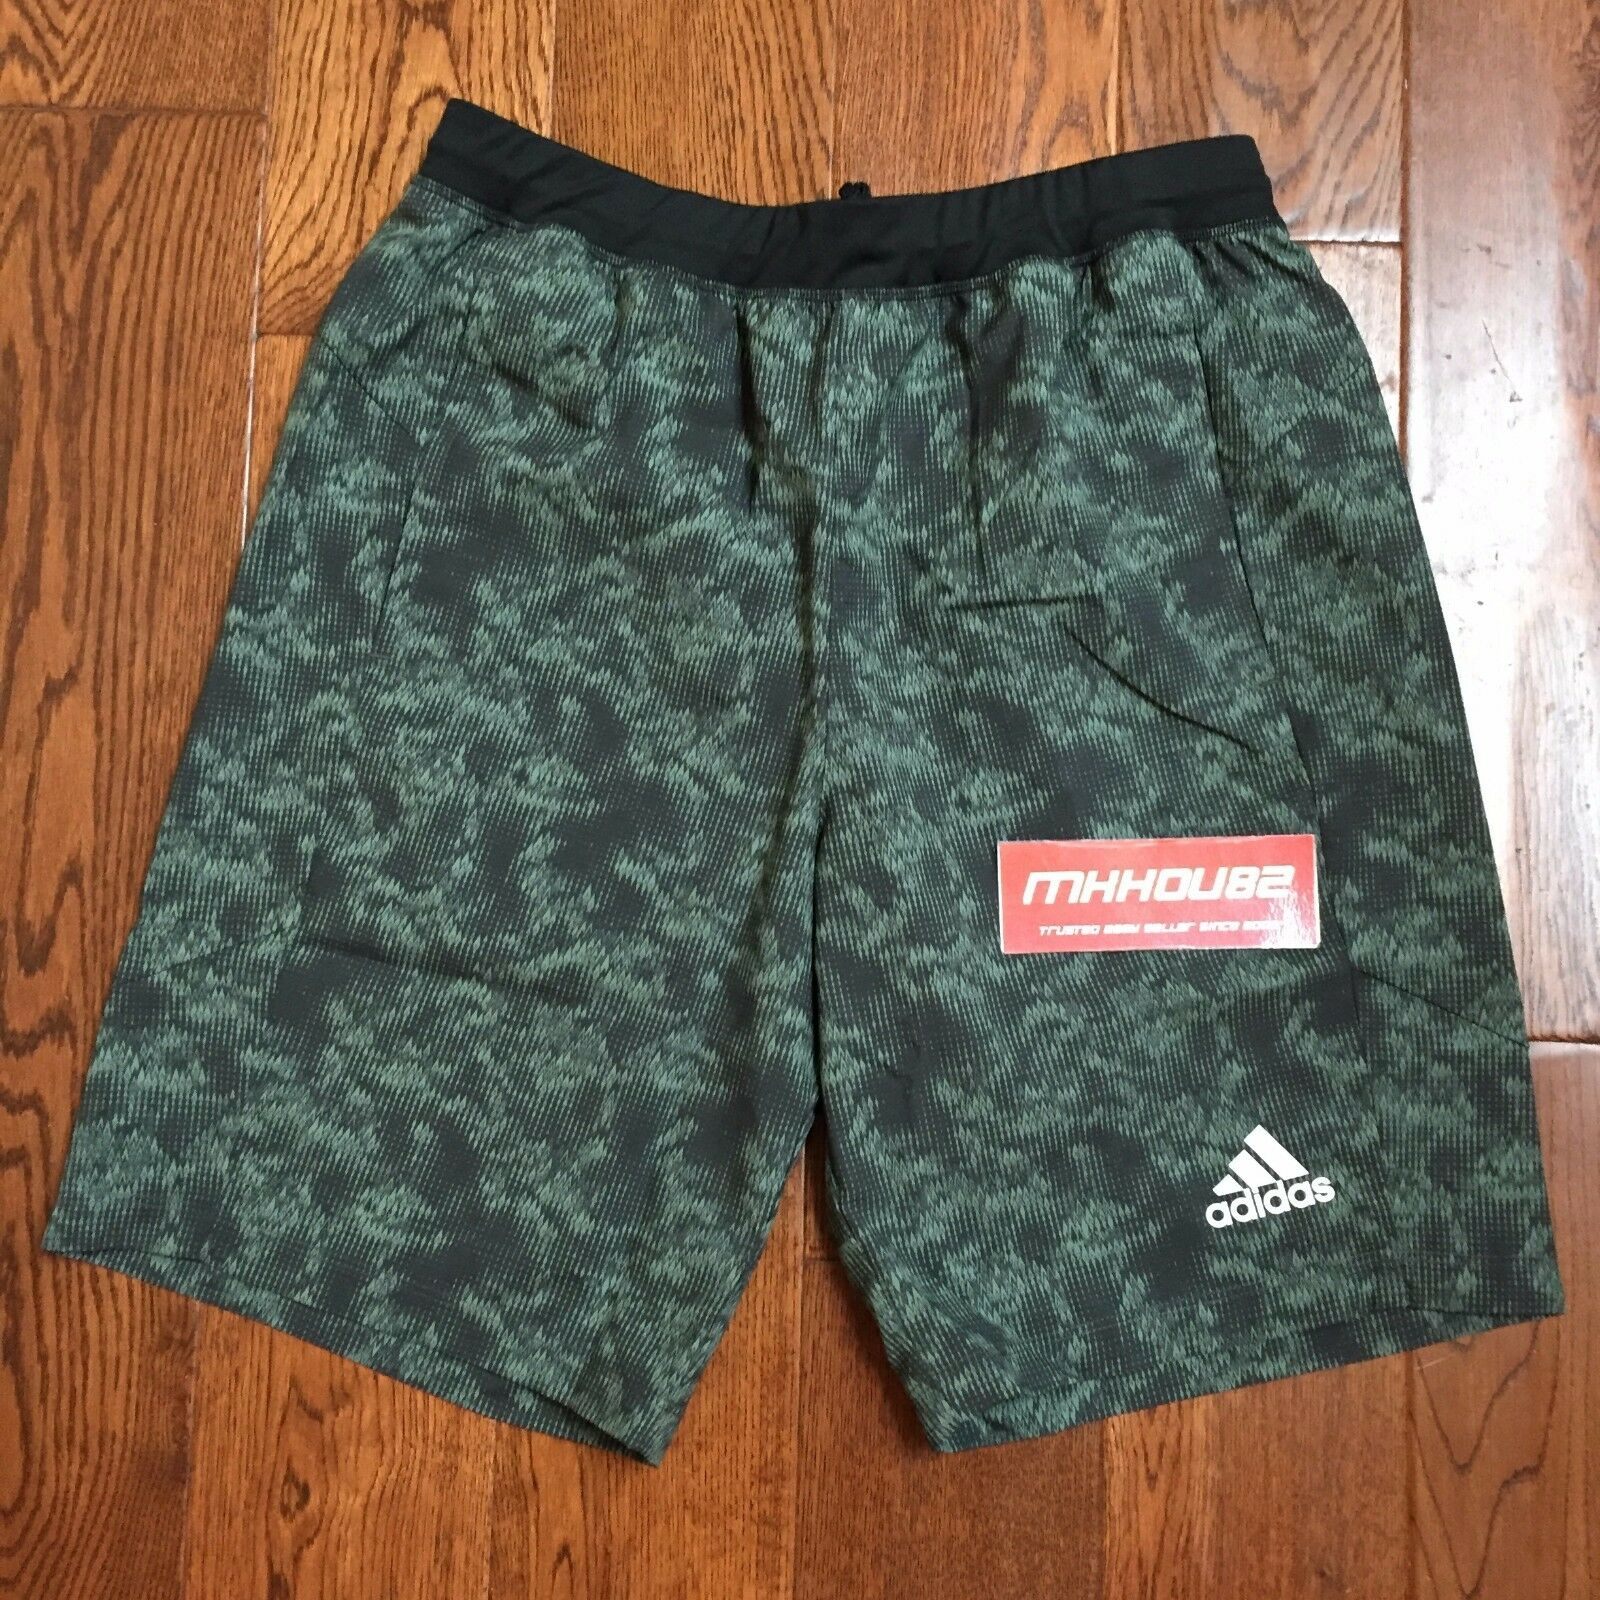 New Adidas Athlete ID Snake Strike Shorts Climalite 10  Running BK3676 Size M